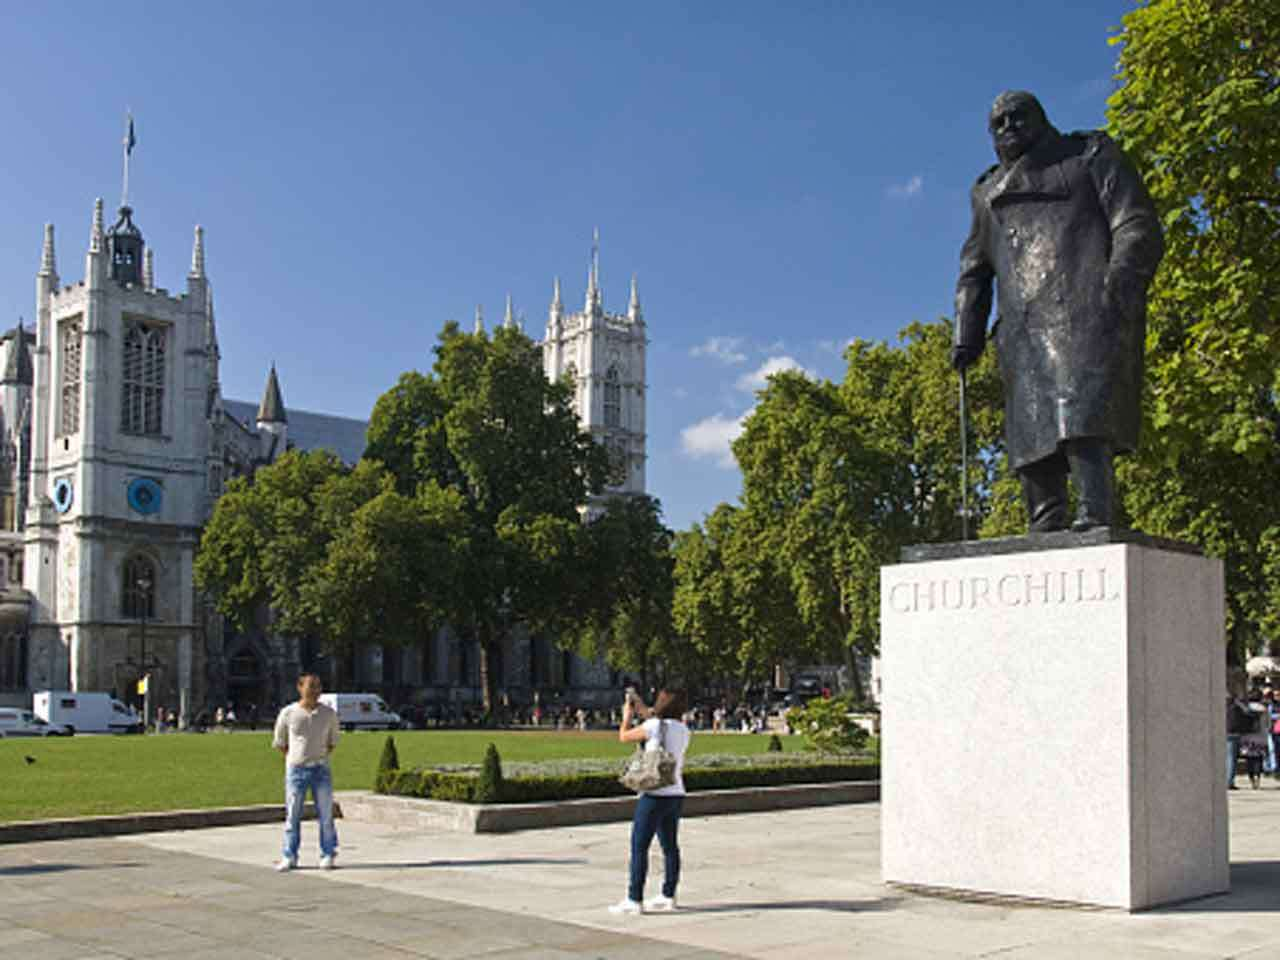 Una estatua de Winston Churchill frente a la Abadía de Westminster. Foto: Getty Images